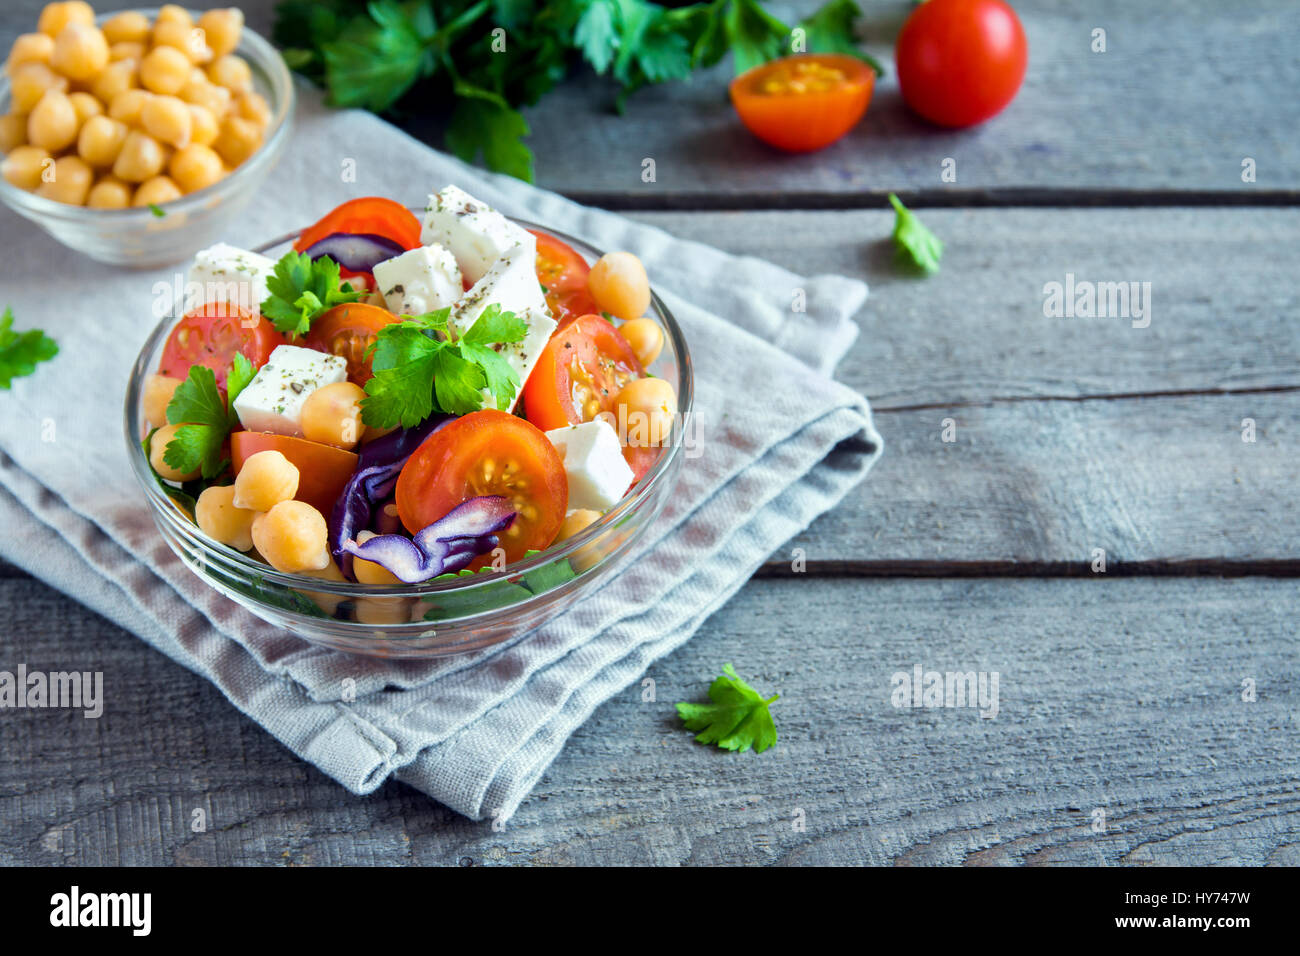 Chickpea and veggie salad with tomatoes, red cabbage, feta cheese (tofu) - healthy homemade vegan vegetarian diet - Stock Image